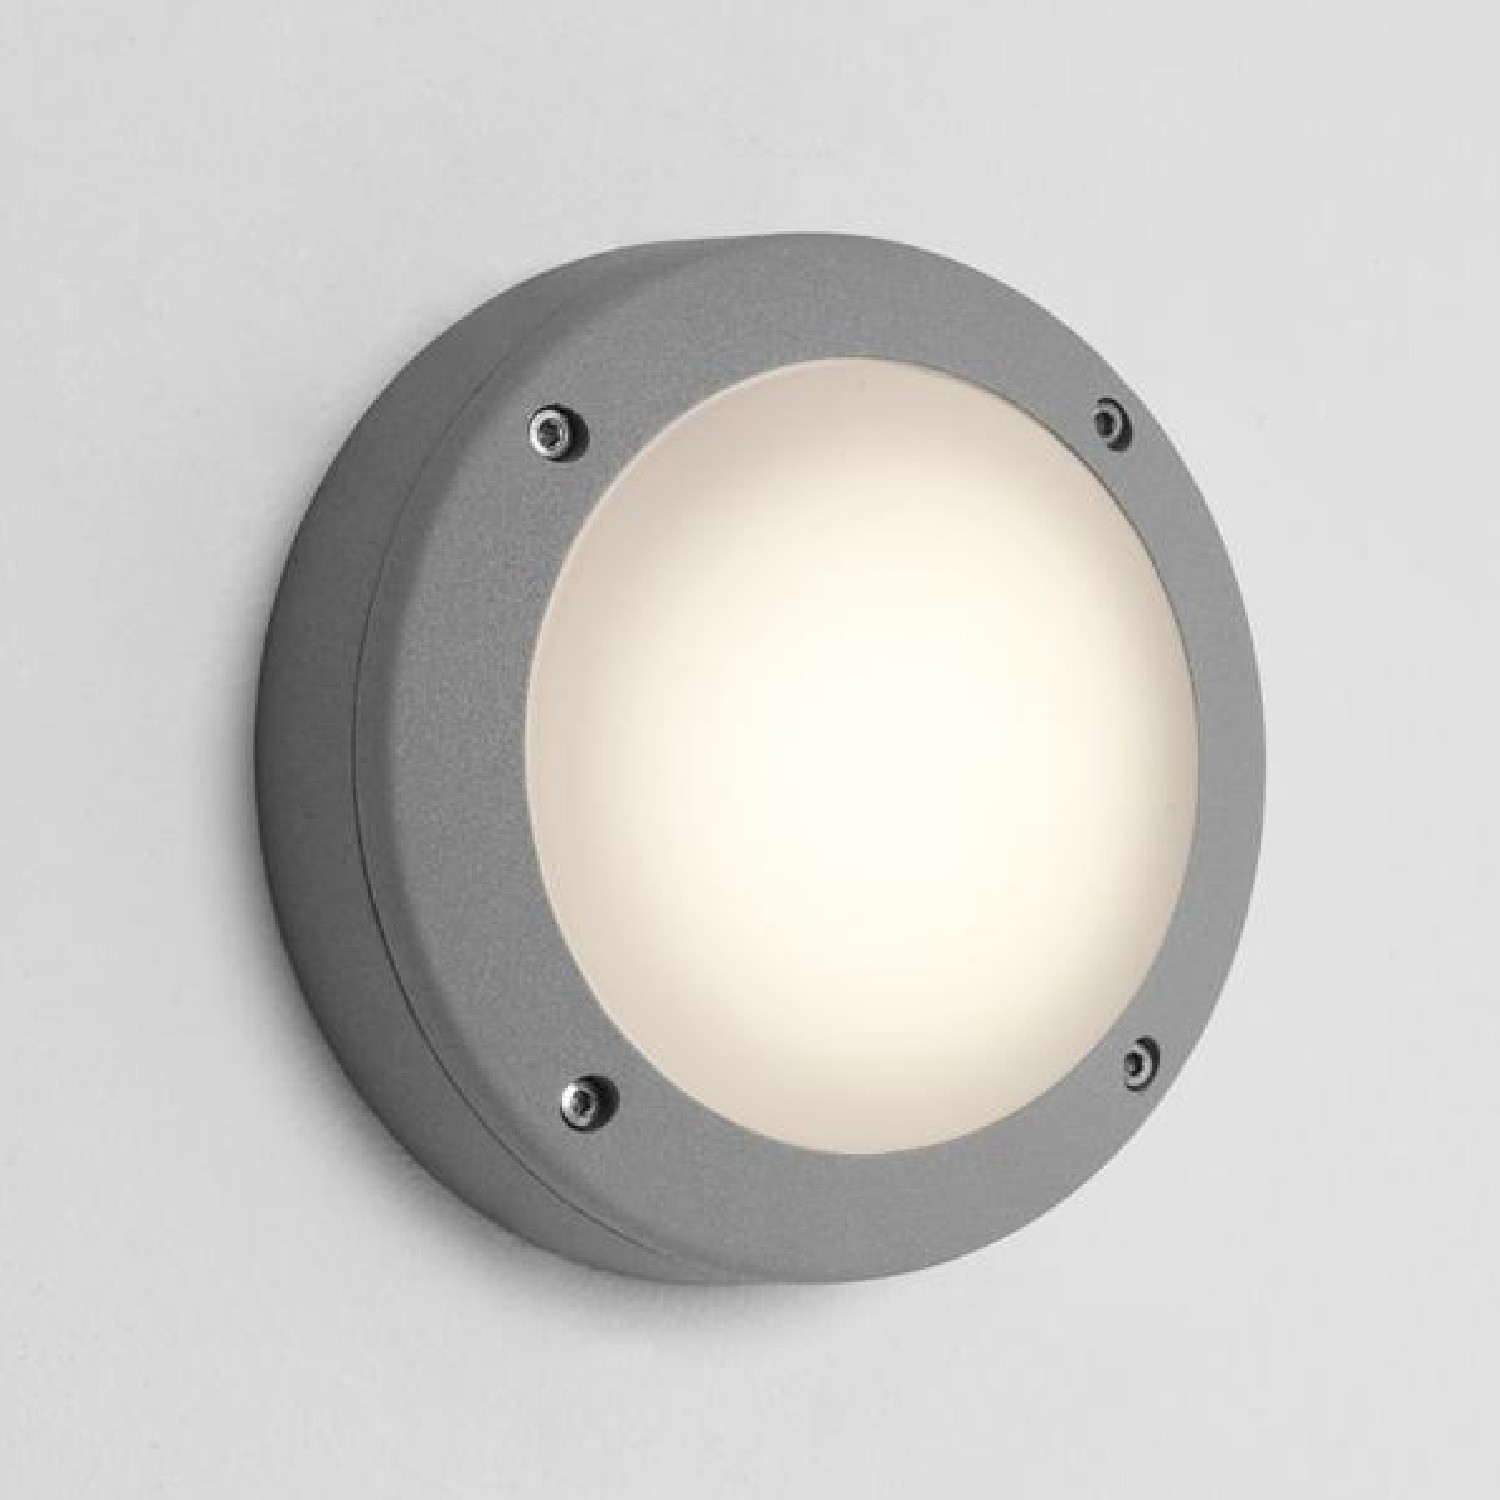 Learic Applique Plafonnier Rond Diam¨tre 15cm par Astro Lighting